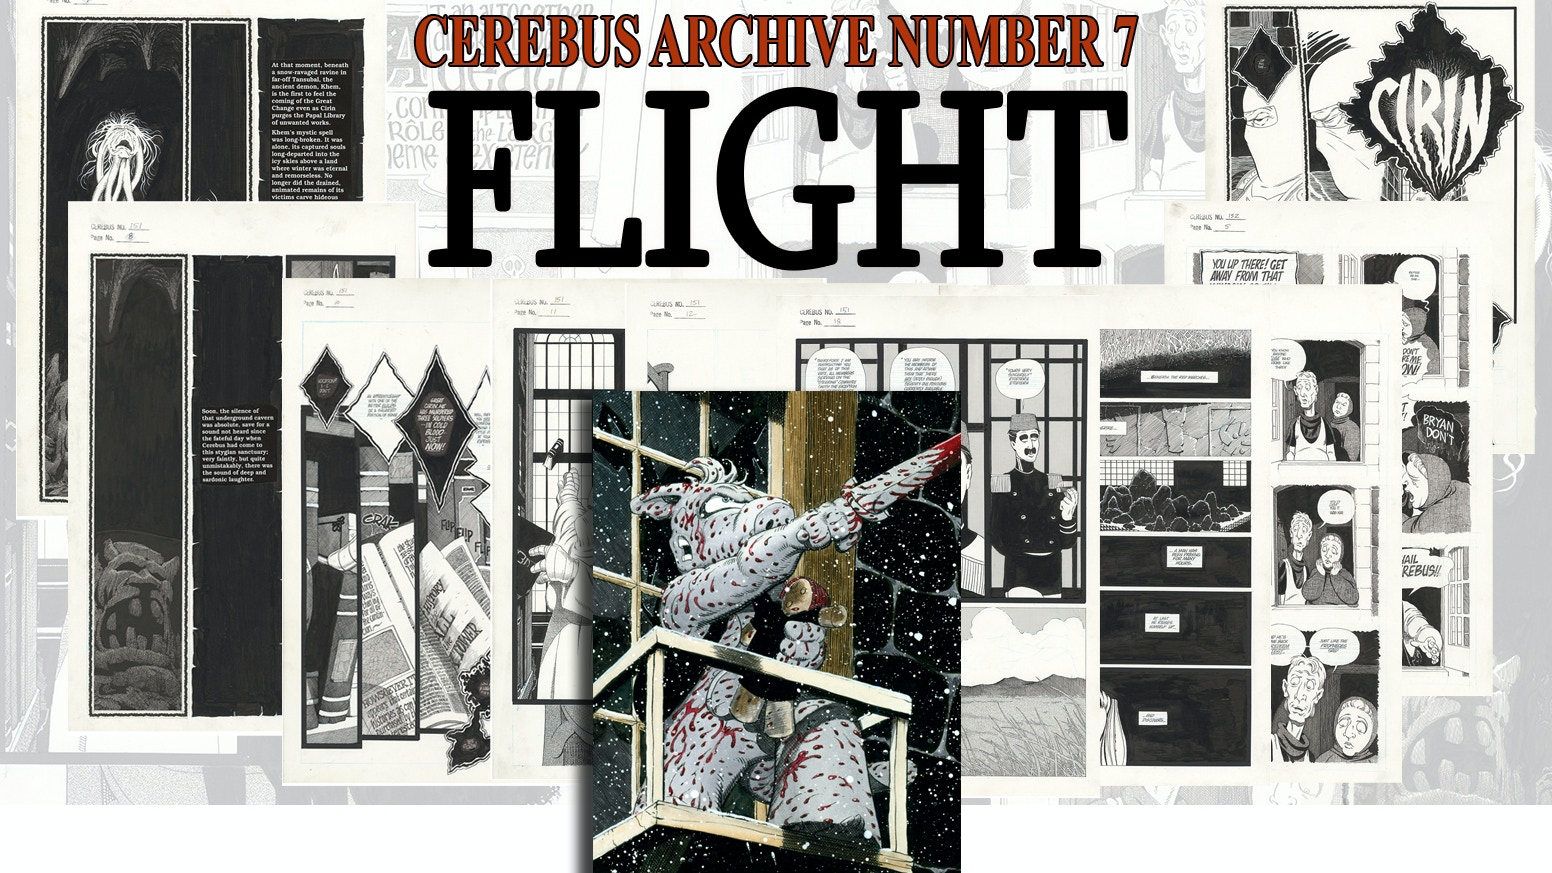 CAN7 - CEREBUS ARCHIVE NUMBER SEVEN